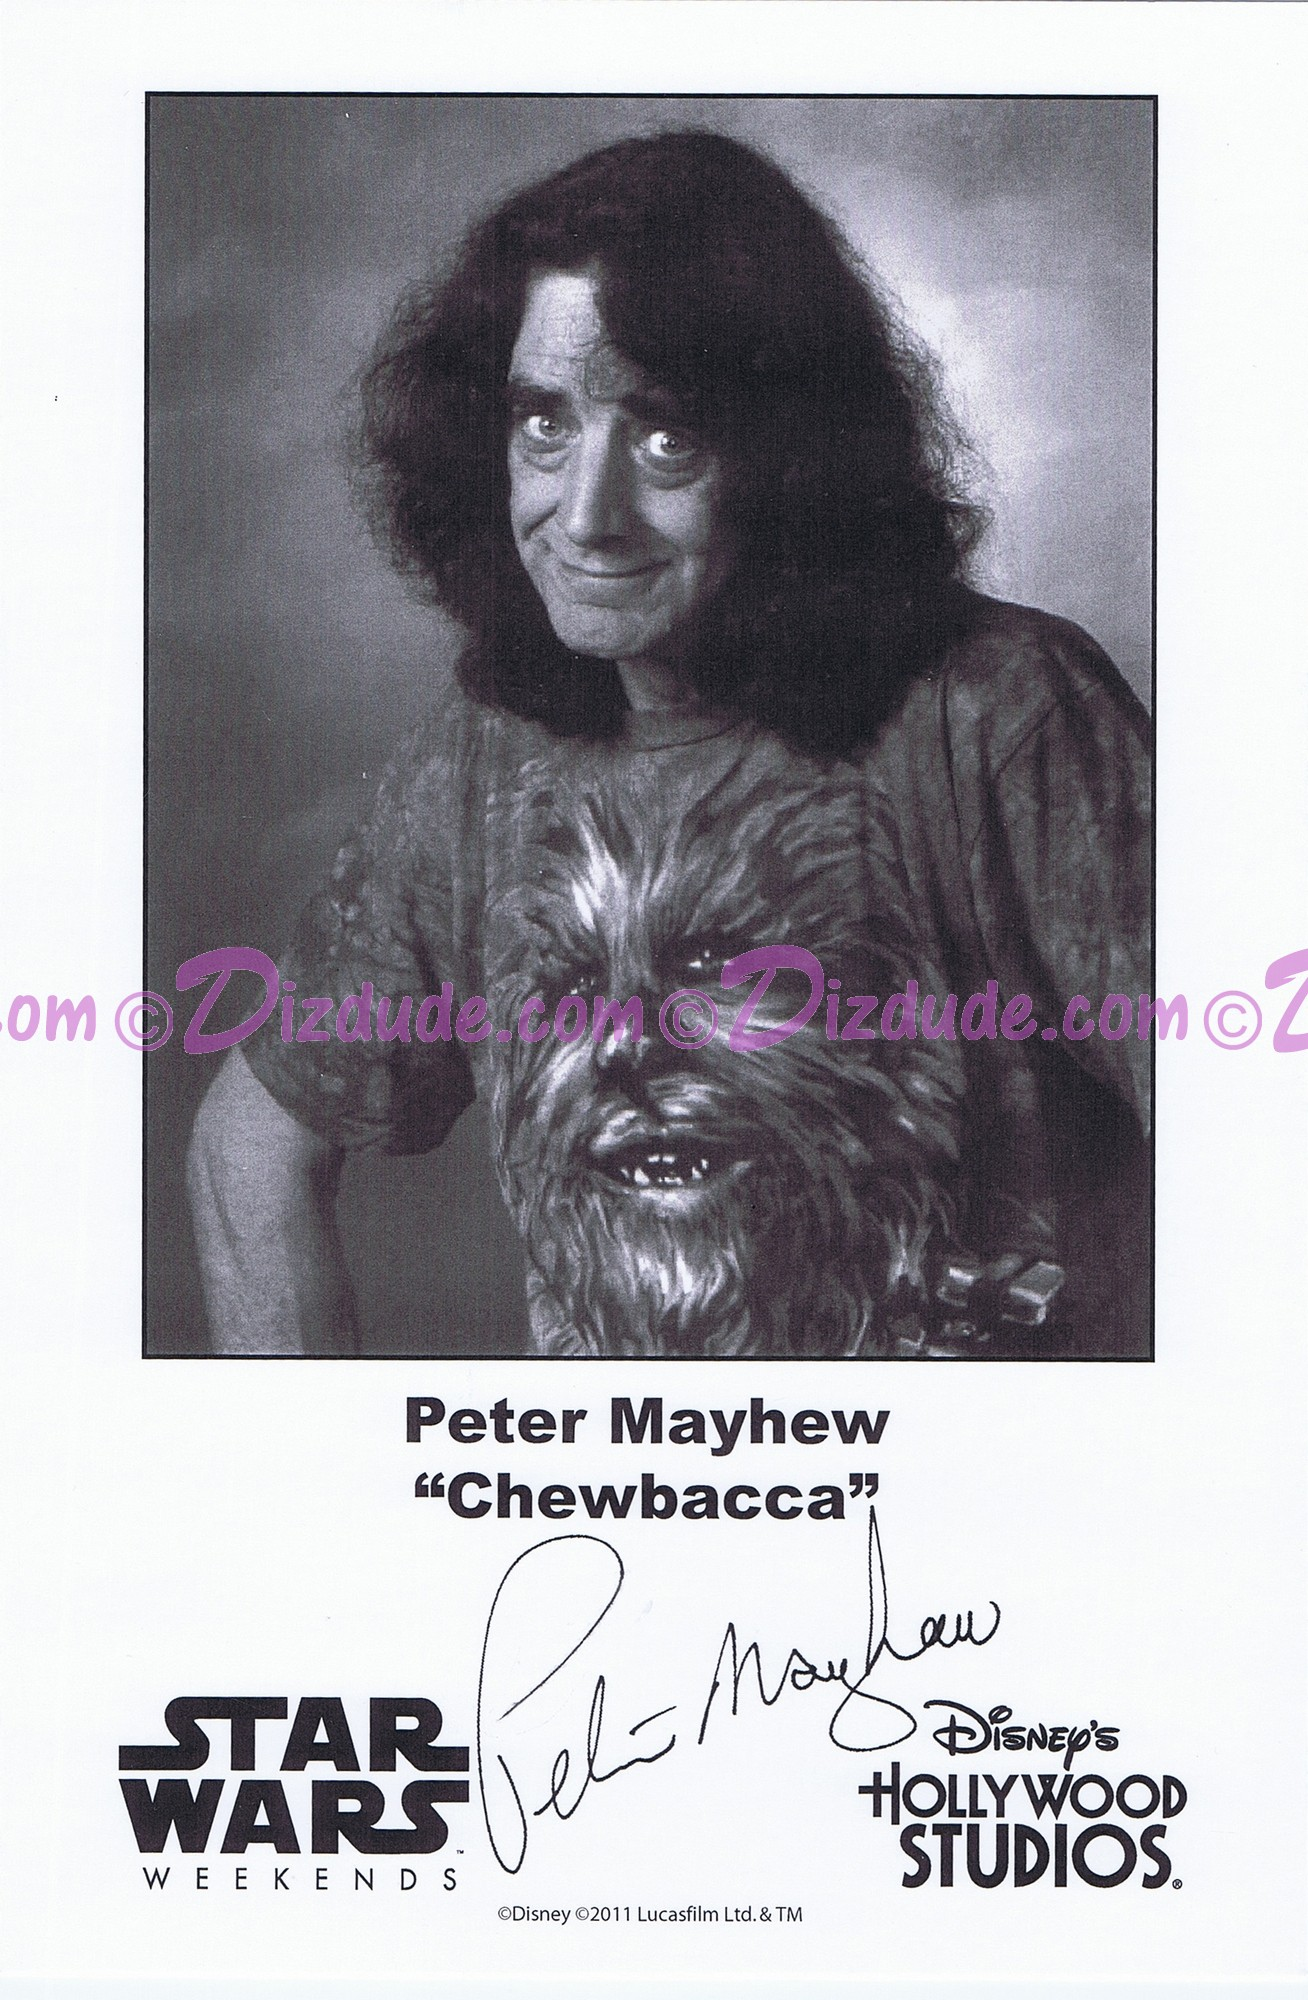 Peter Mayhew who played Chewbacca Presigned Official Star Wars Weekends 2011 Celebrity Collector Photo